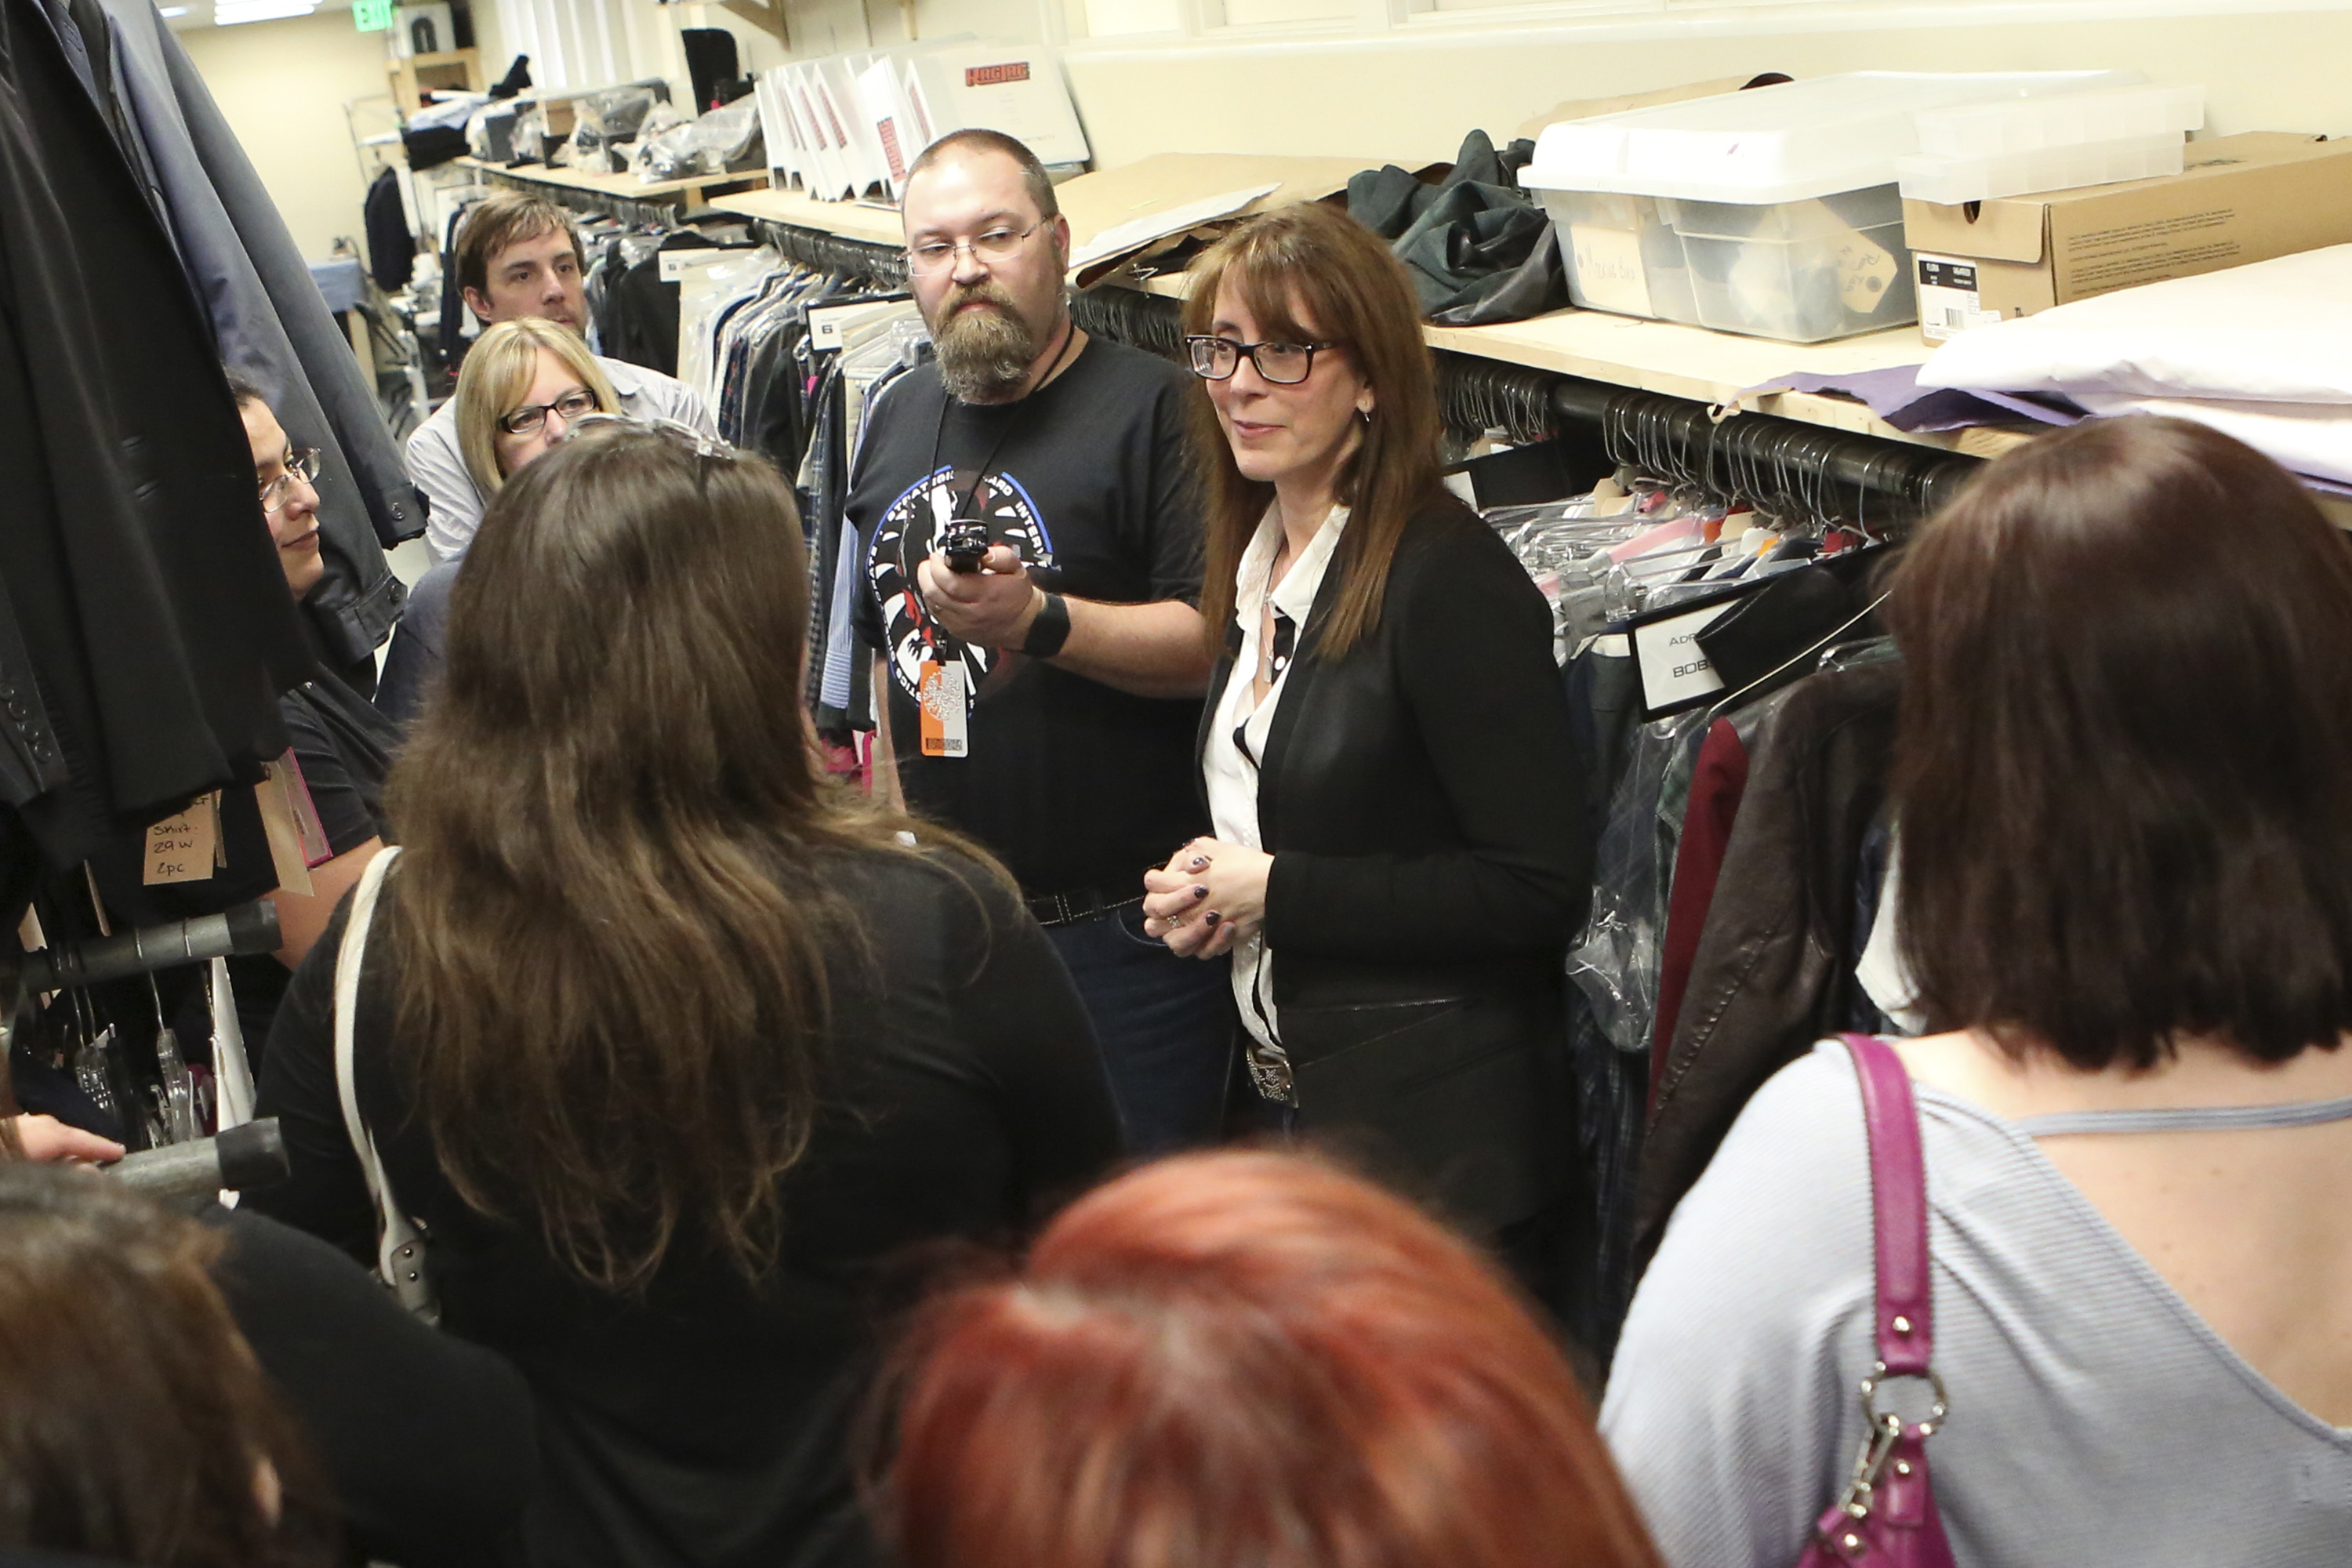 Ann Foley Dresses #AgentsOfSHIELD for Success and Kicking Butt – #ABCTVEvent